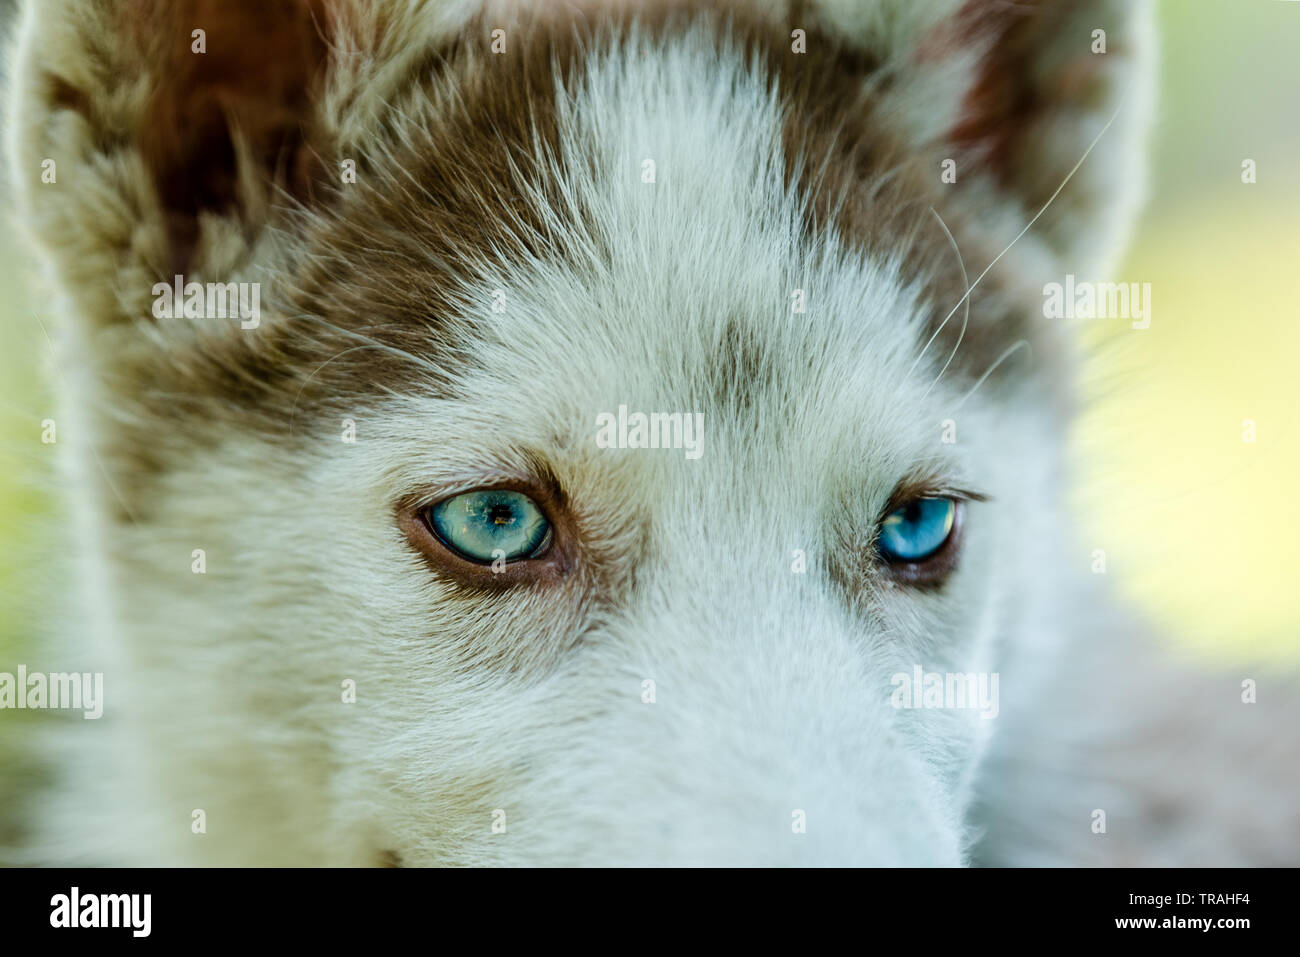 Cute Blue Eye Siberian Husky Puppy Playing And Looking Around Stock Photo Alamy